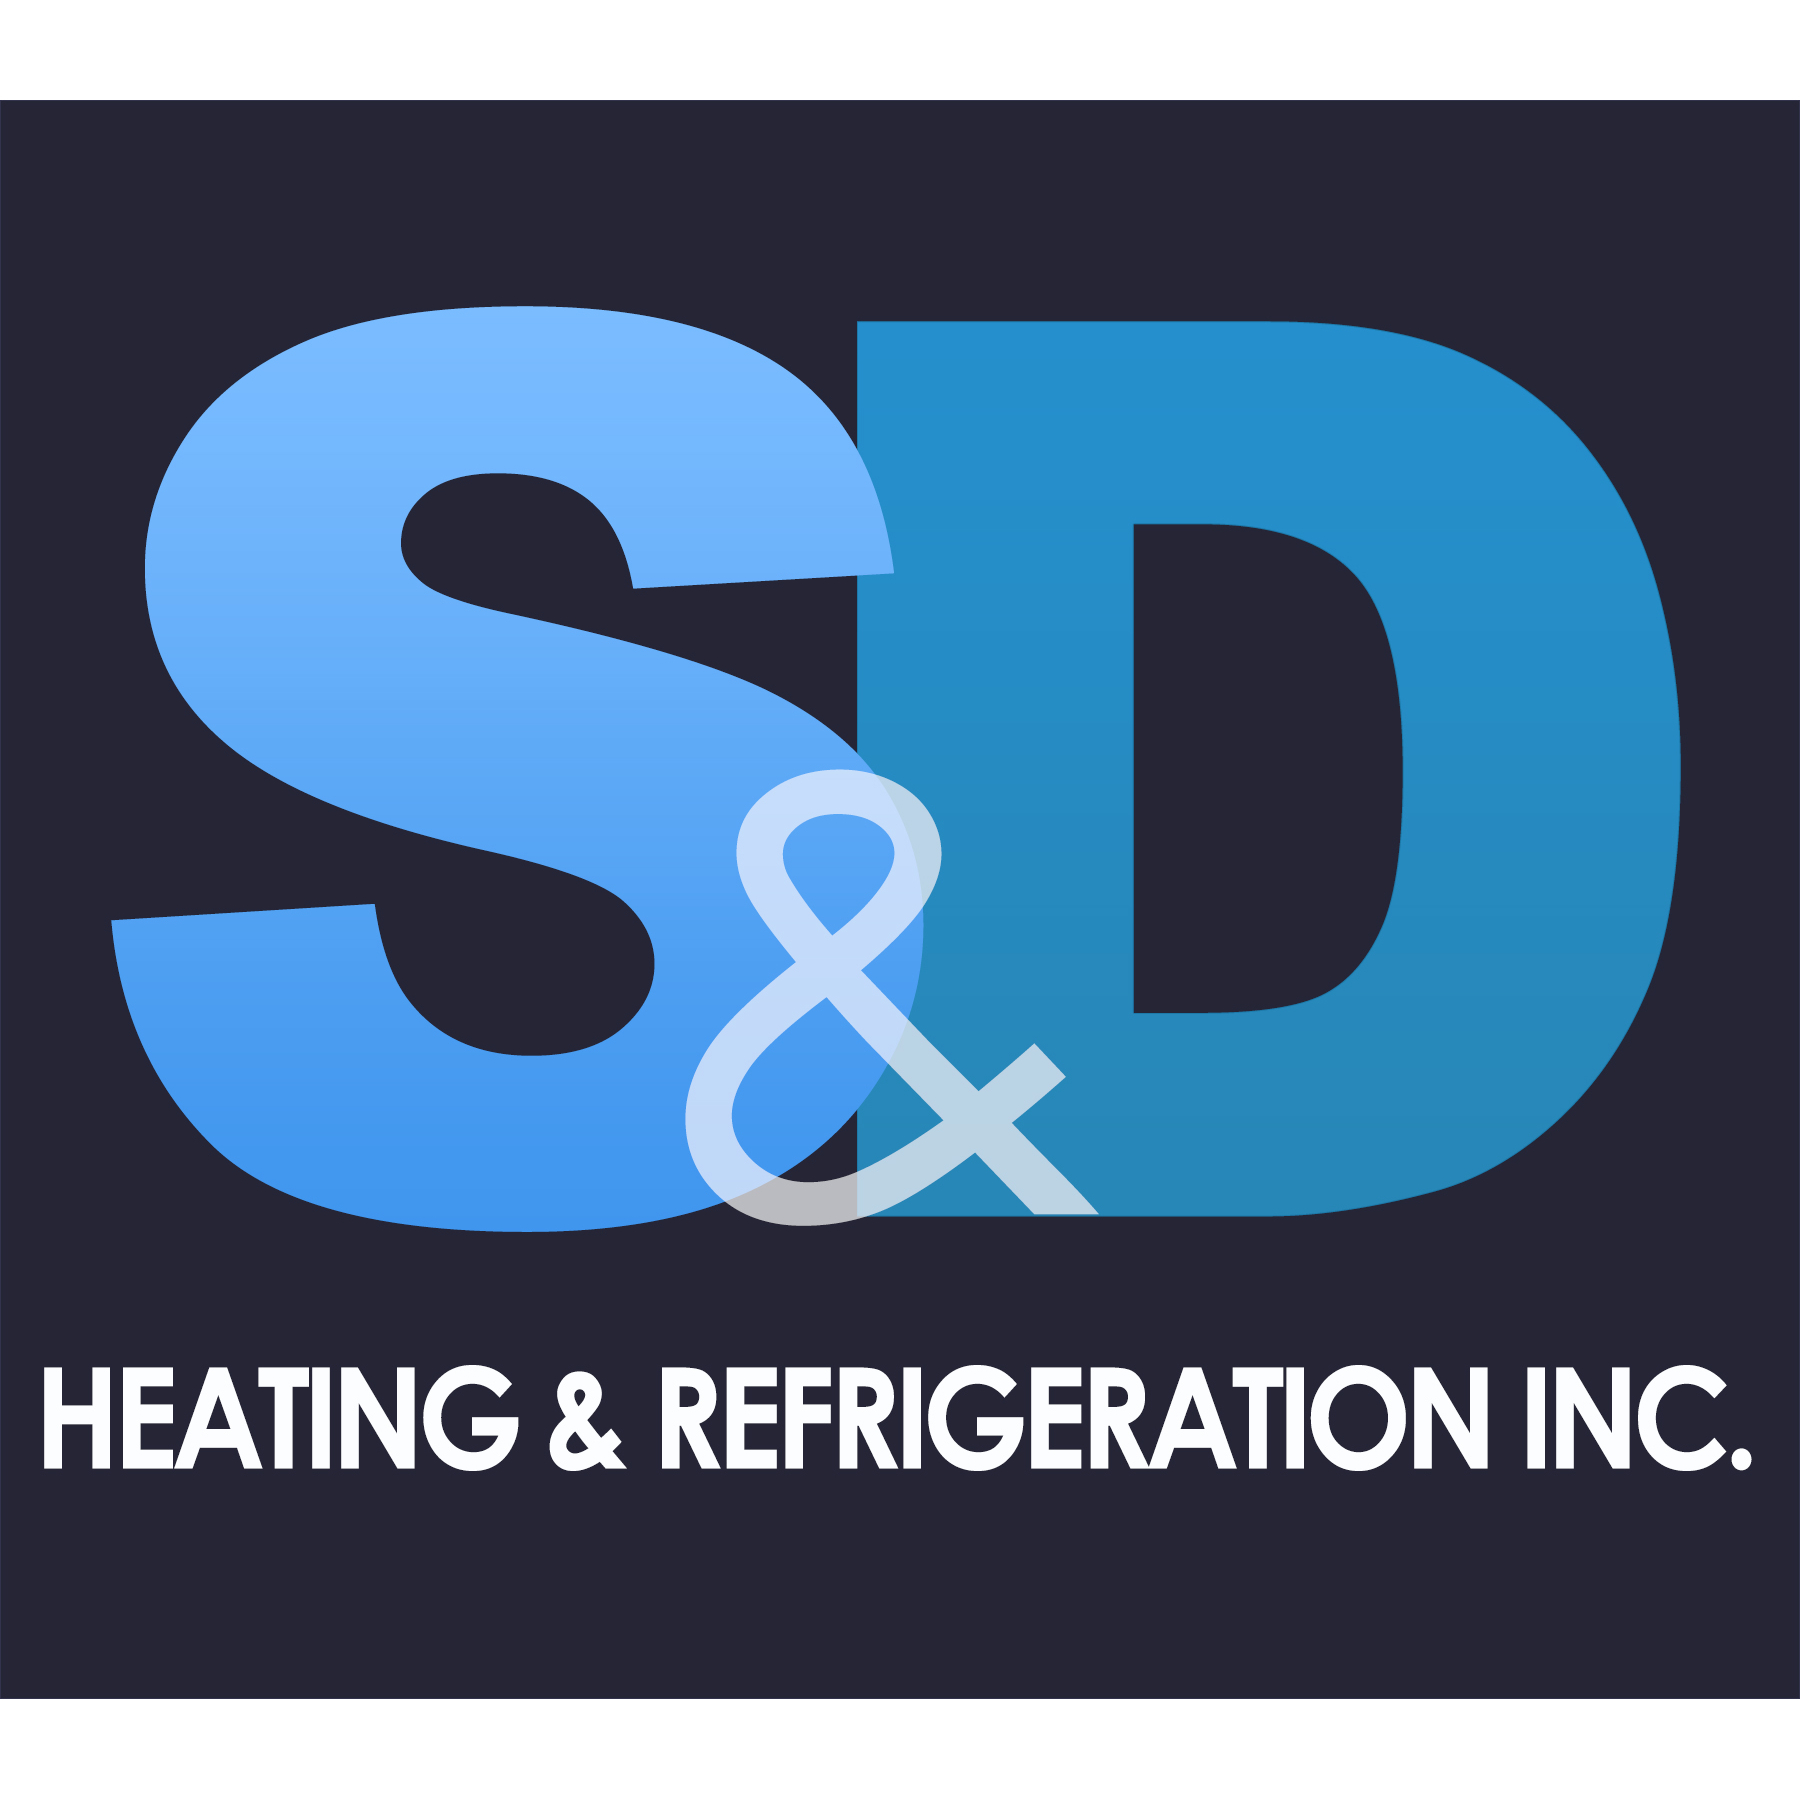 S & D Heating Refrigeration, Inc